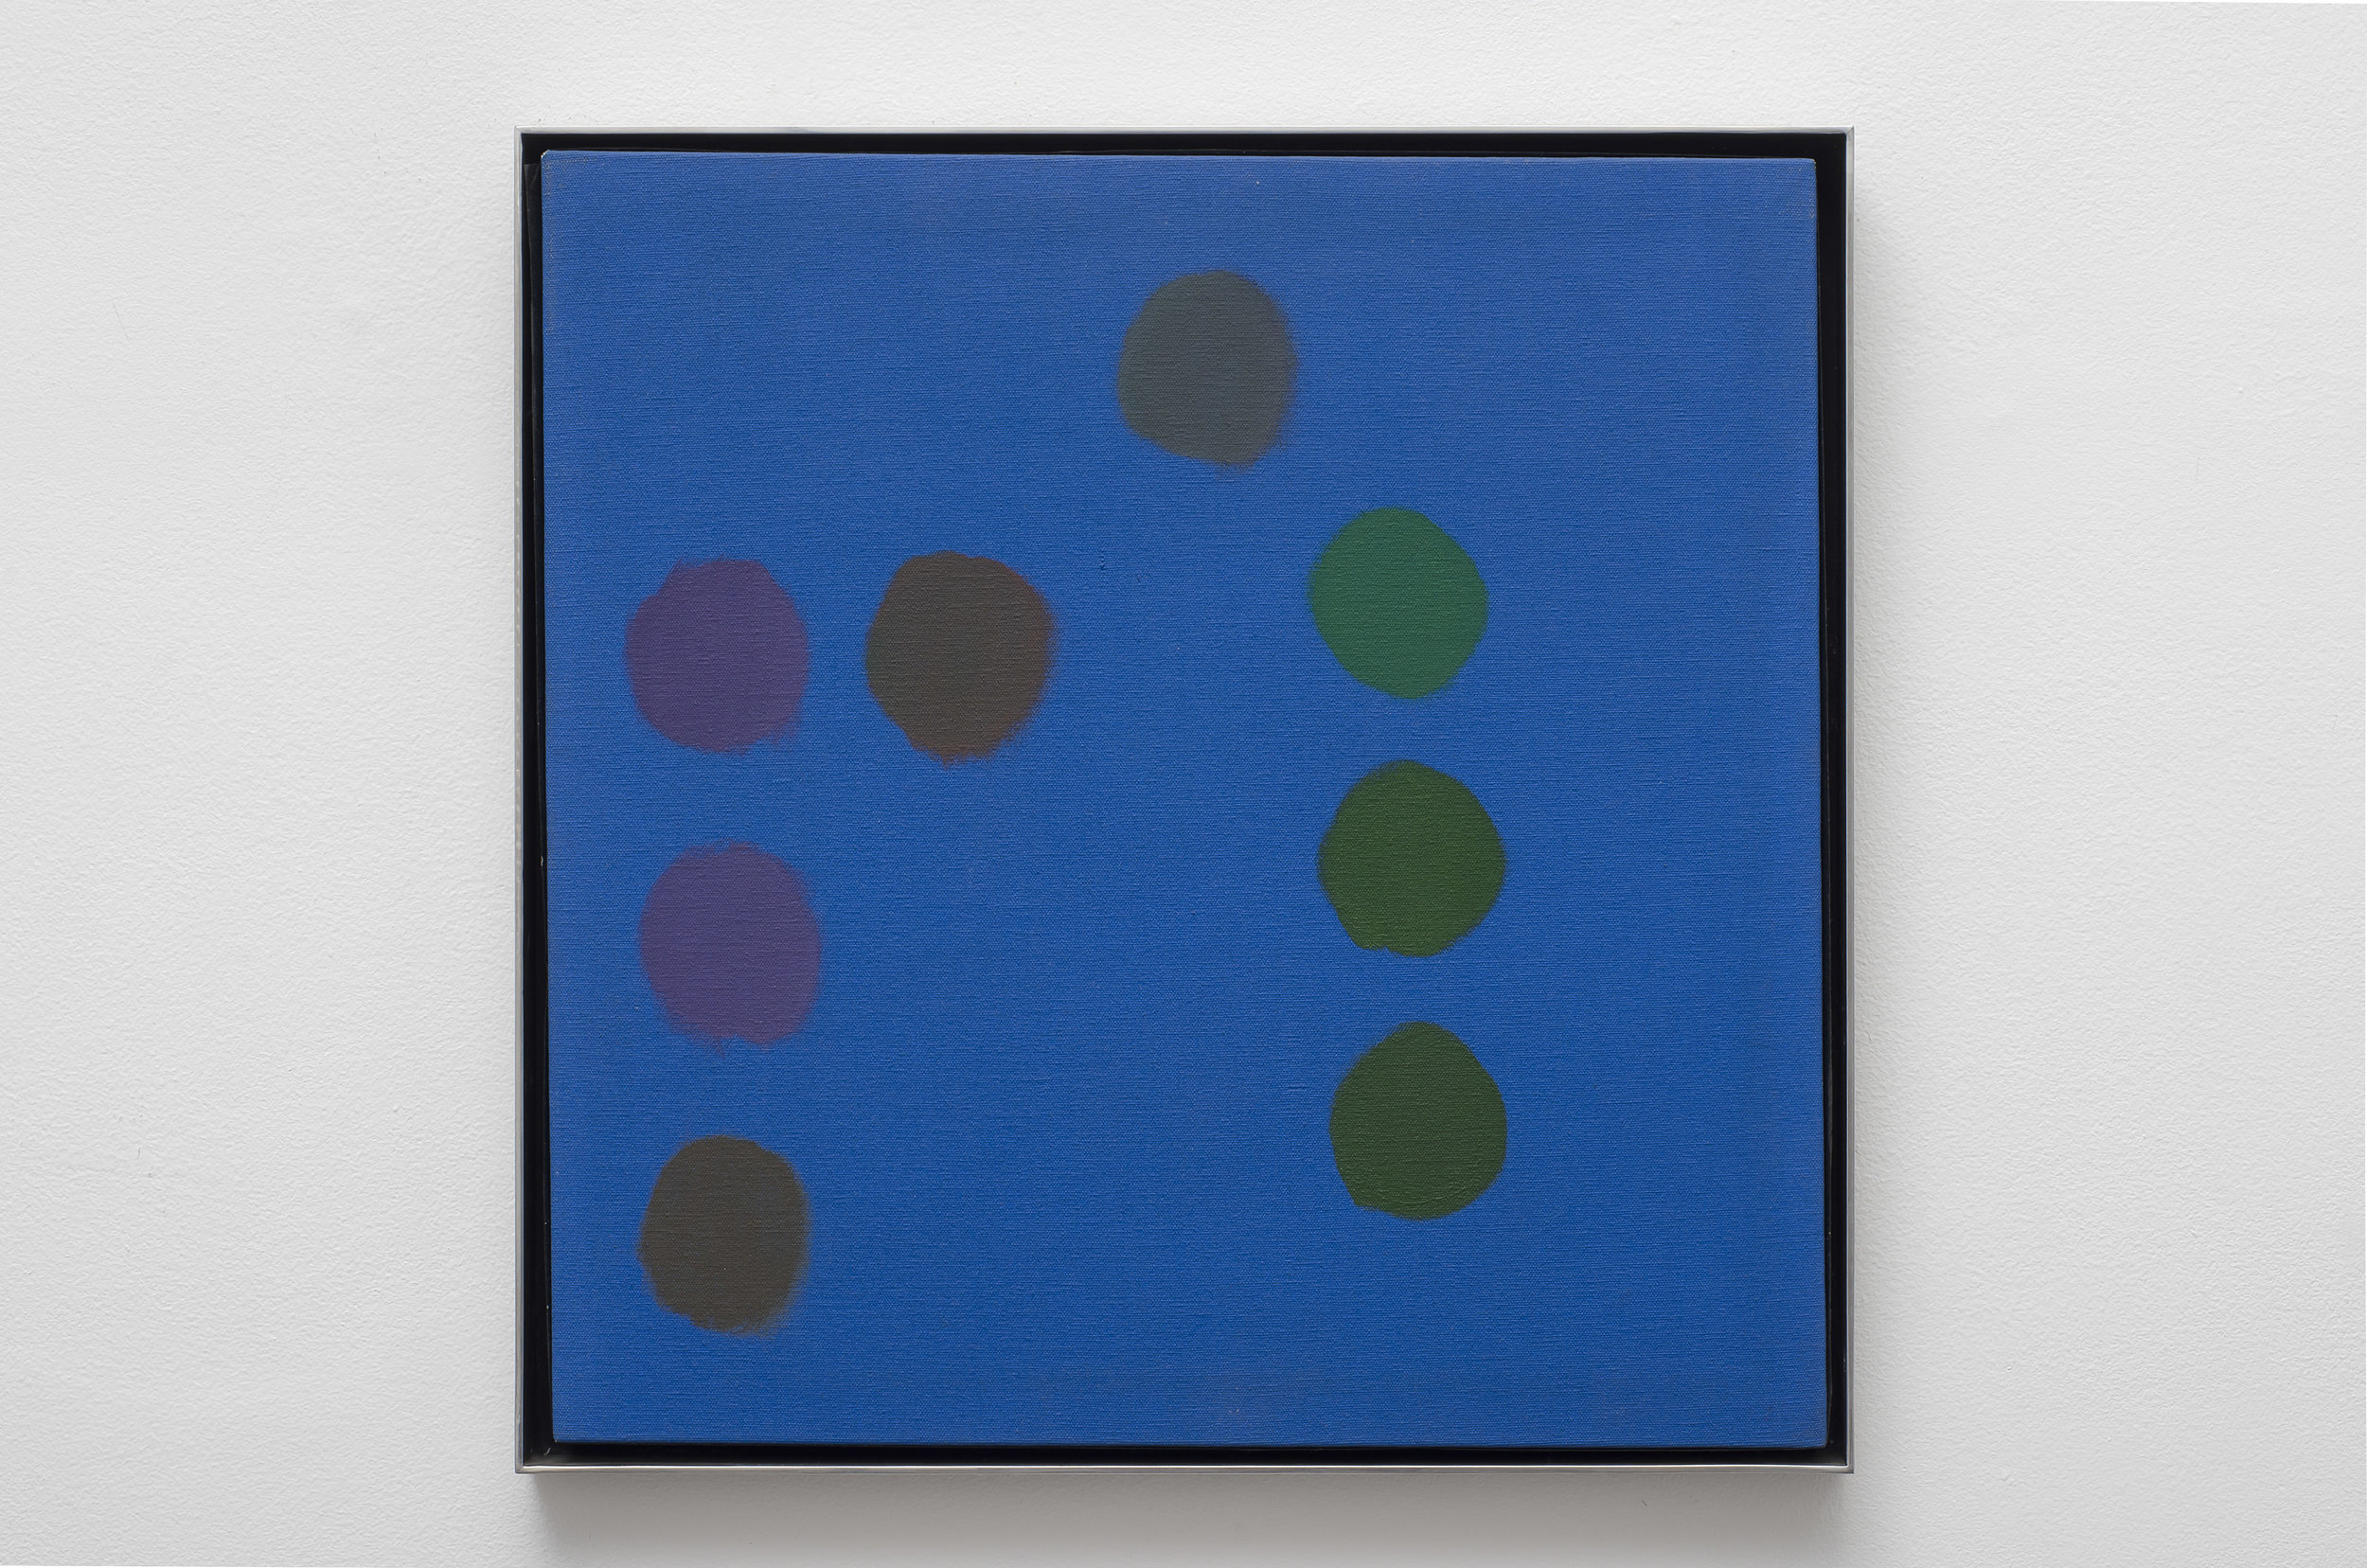 Untitled, c. 1969  oil on canvas 18 x 18 inches; 46.3 x 45.7 centimeters